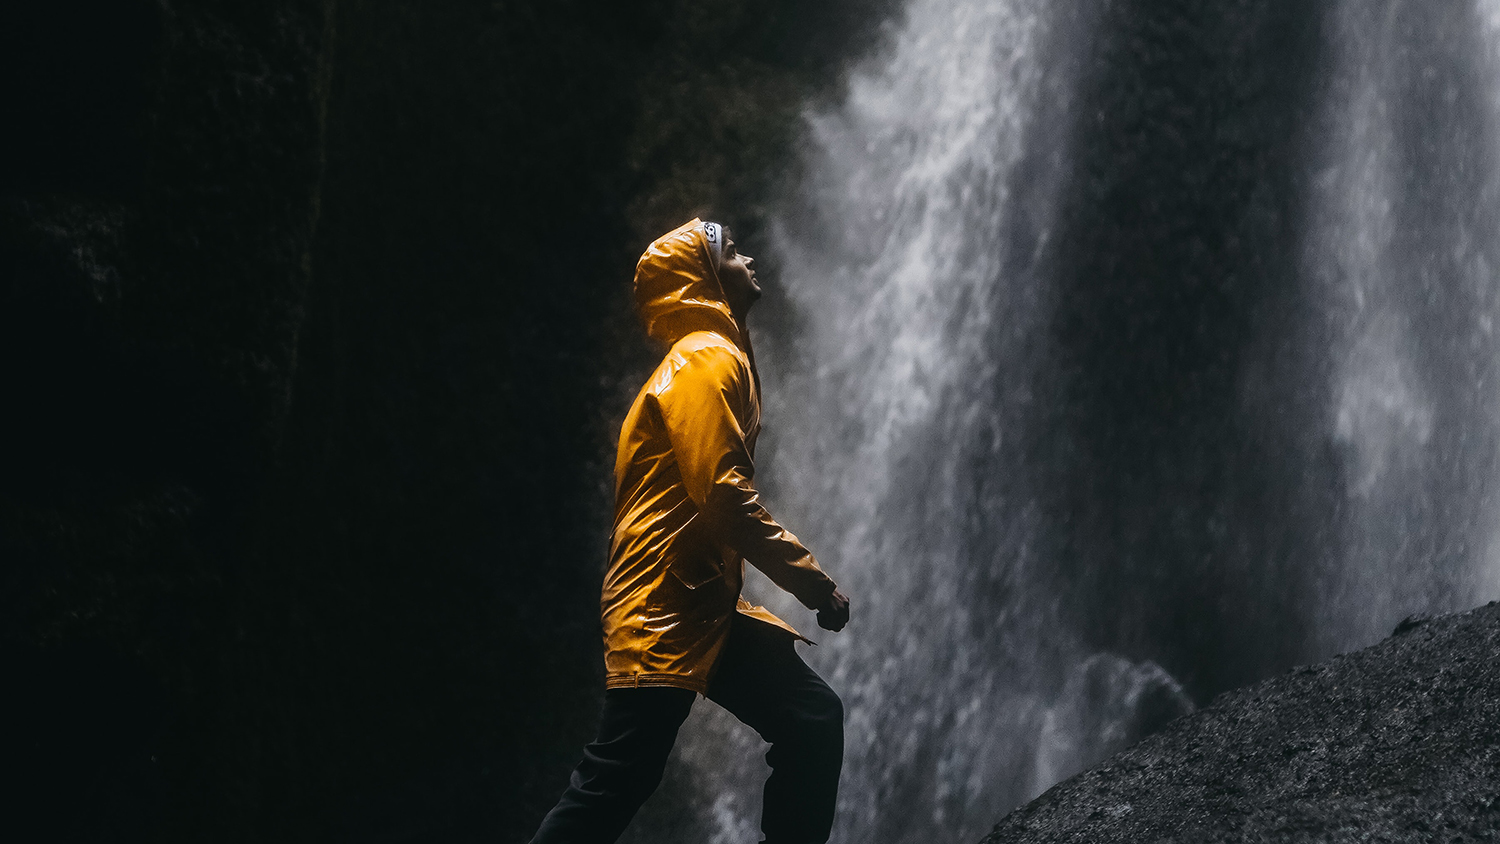 young man looking up at a waterfall in darkness